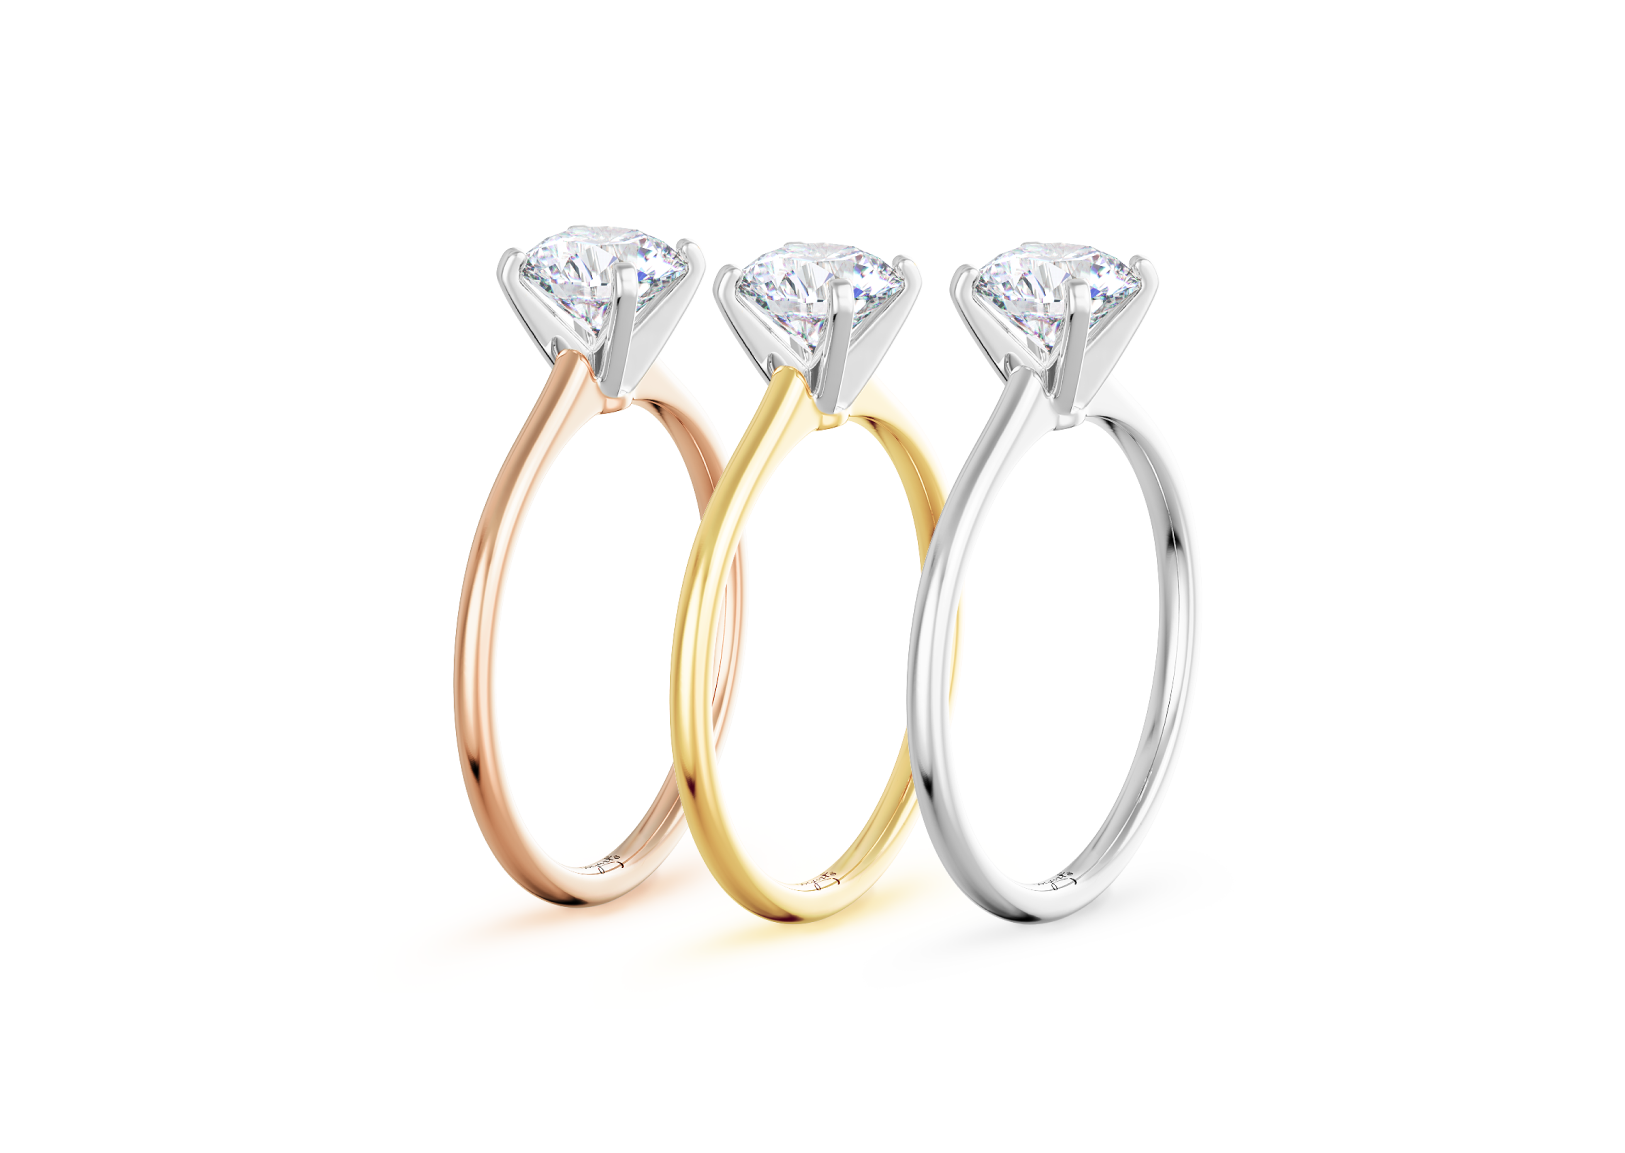 standing side view of Petite Micropave Diamond Engagement Rings in rose, yellow, and white gold